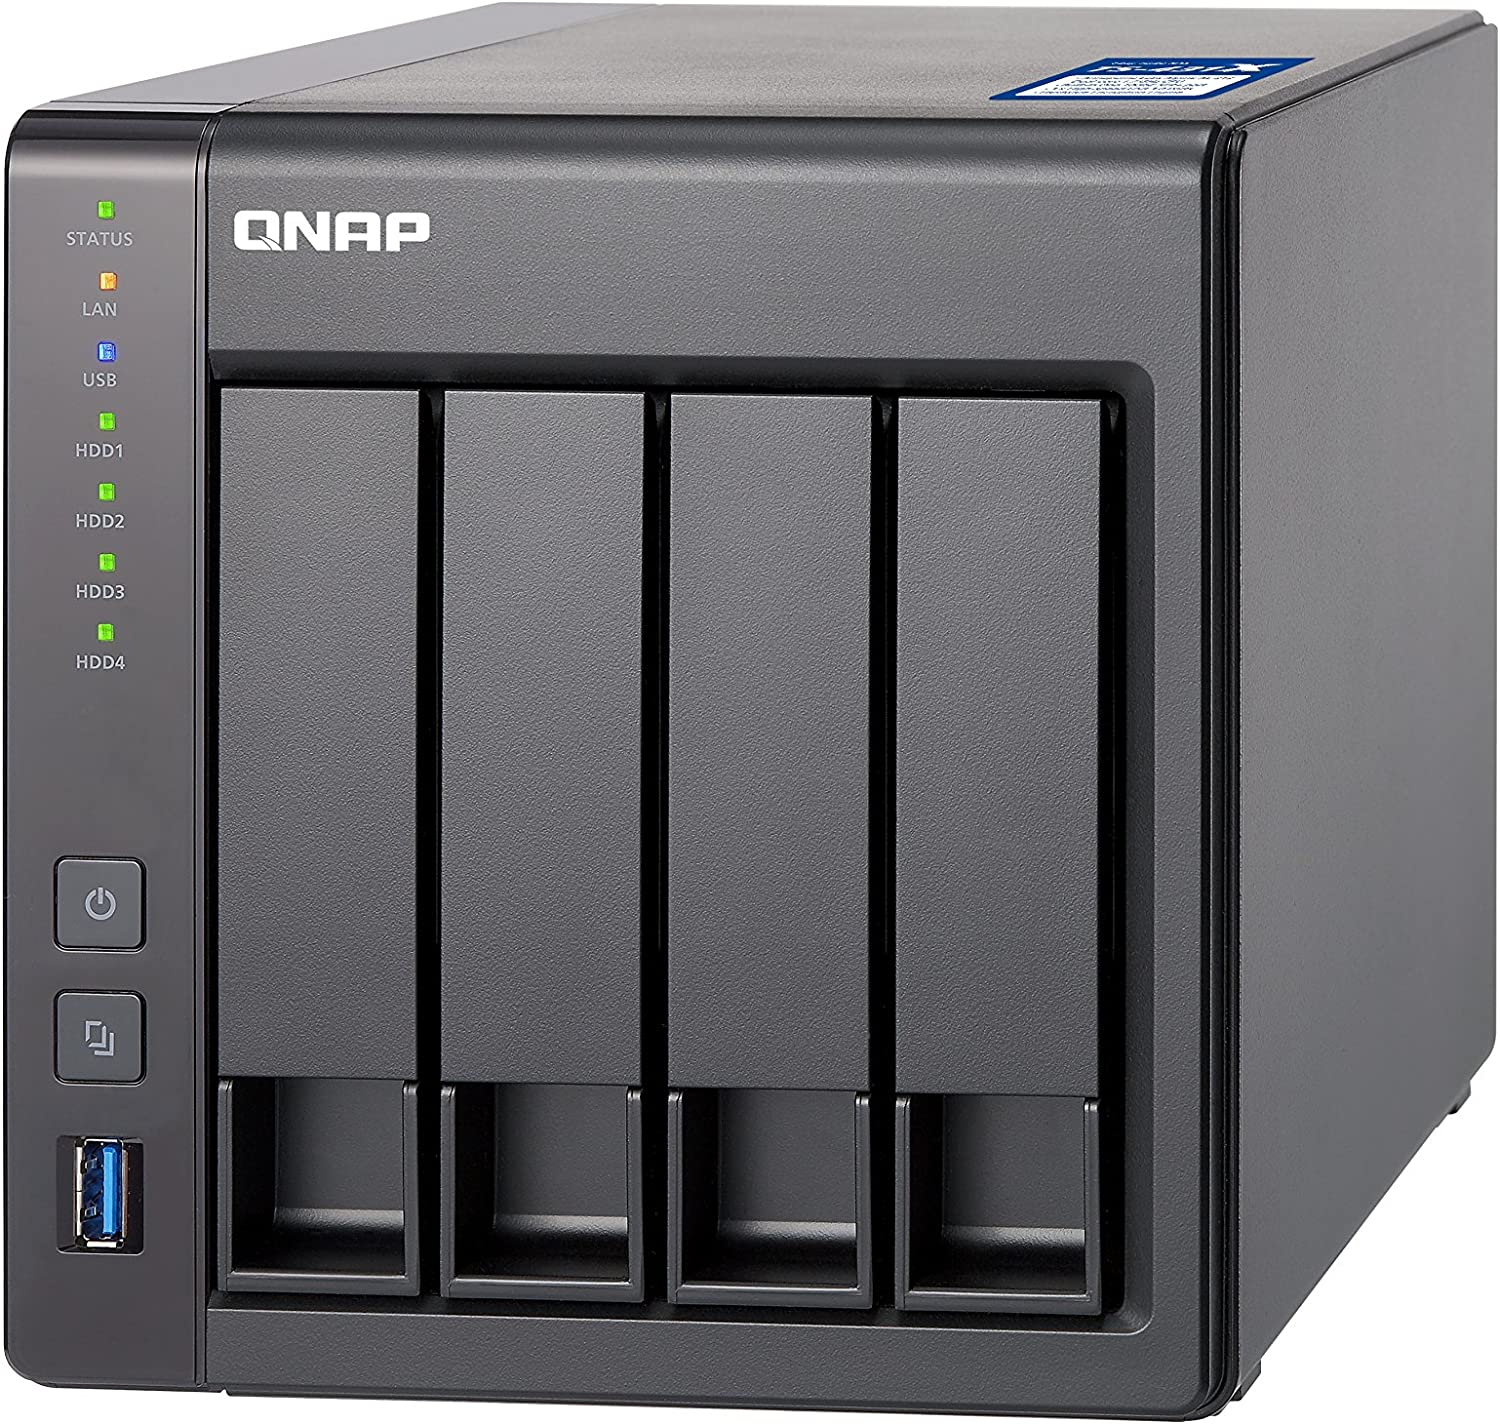 TALLA 16TB Western Digital Red Drives. QNAP TS-431X-8G/16TB-RED 4 Bay NAS -